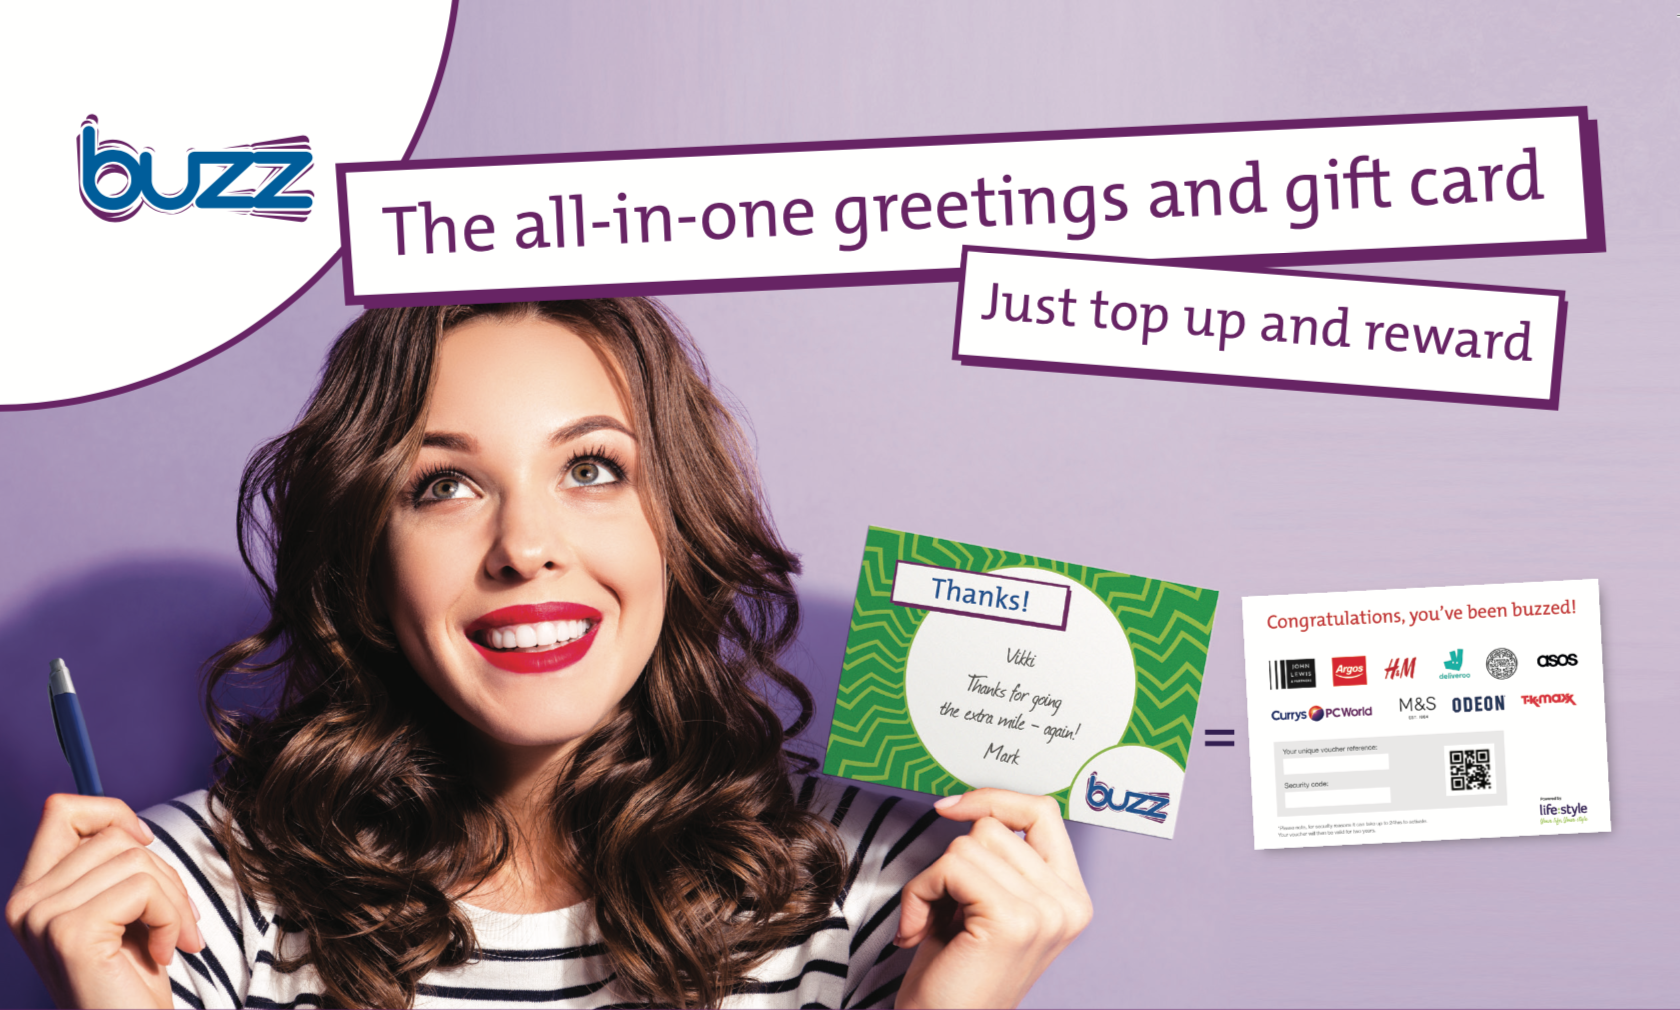 Motivates Inc launches new all-in-one greetings and gift card product